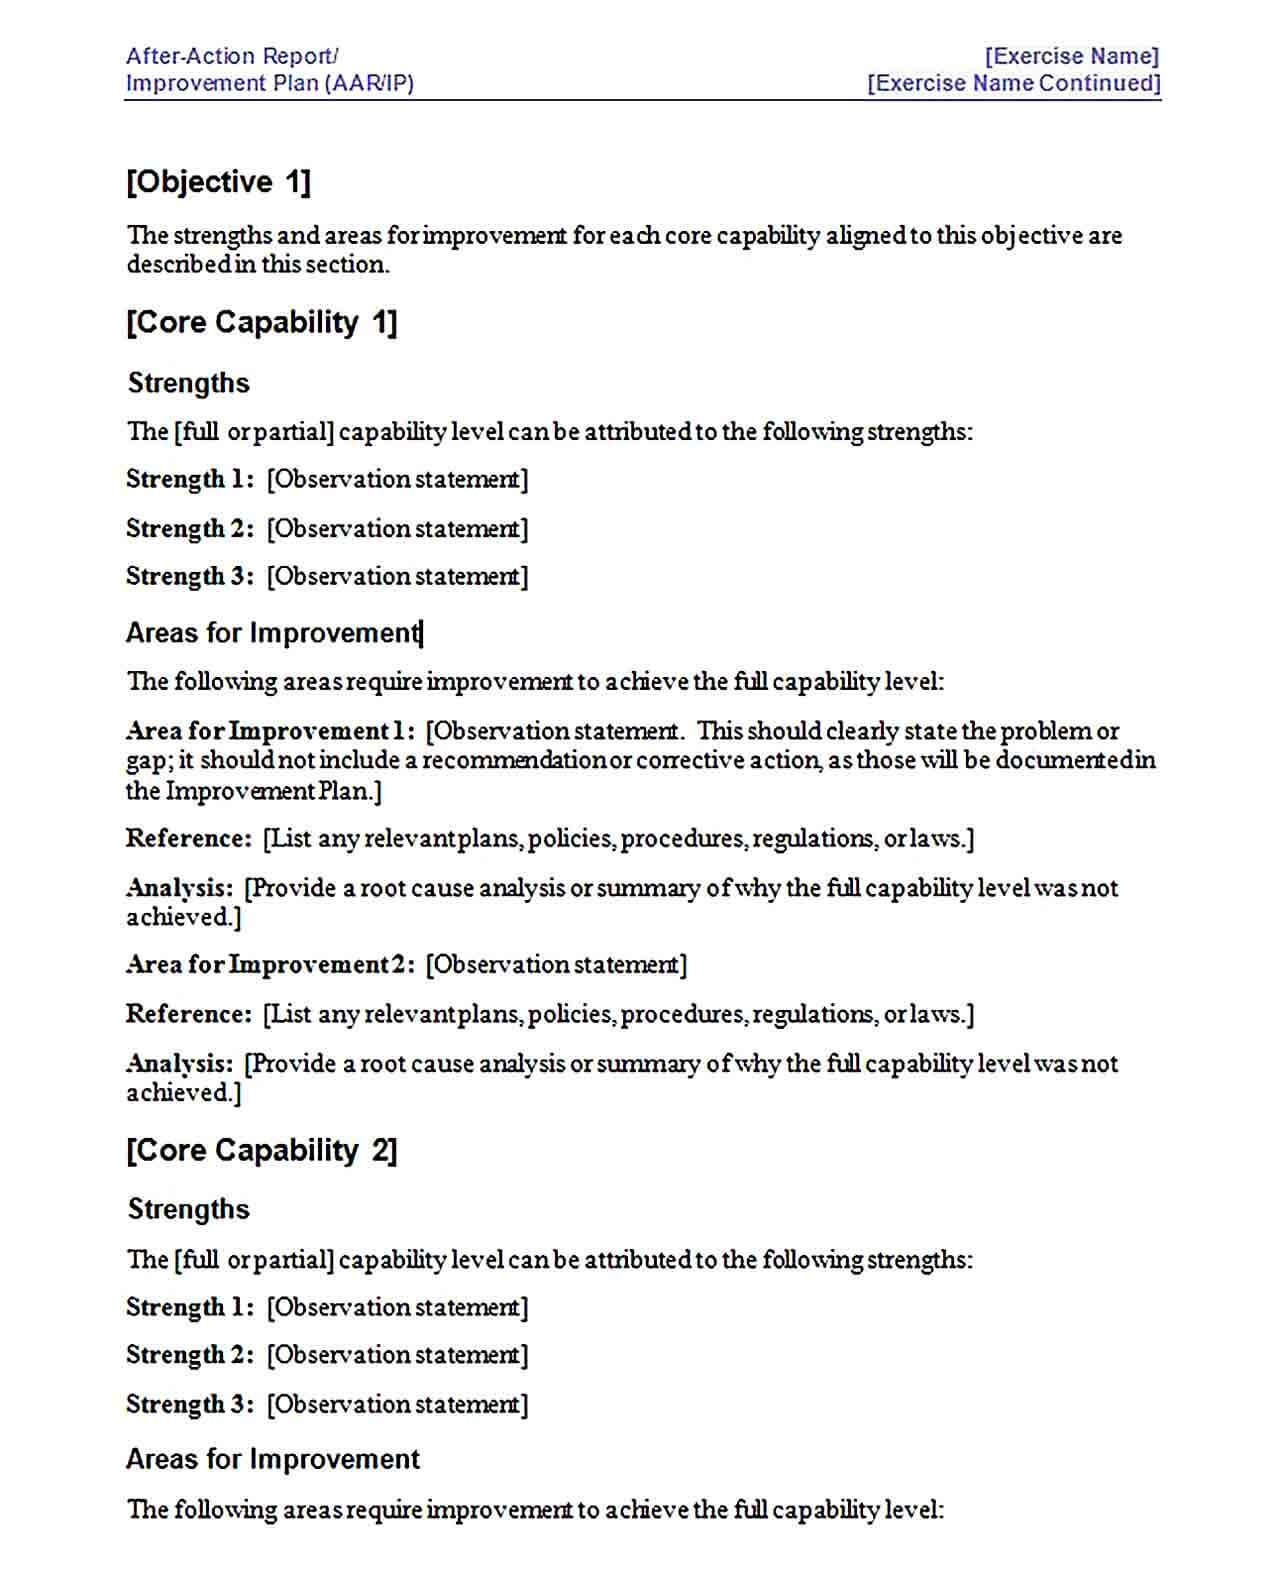 Sample After Action Report Improvement Plan Template 1